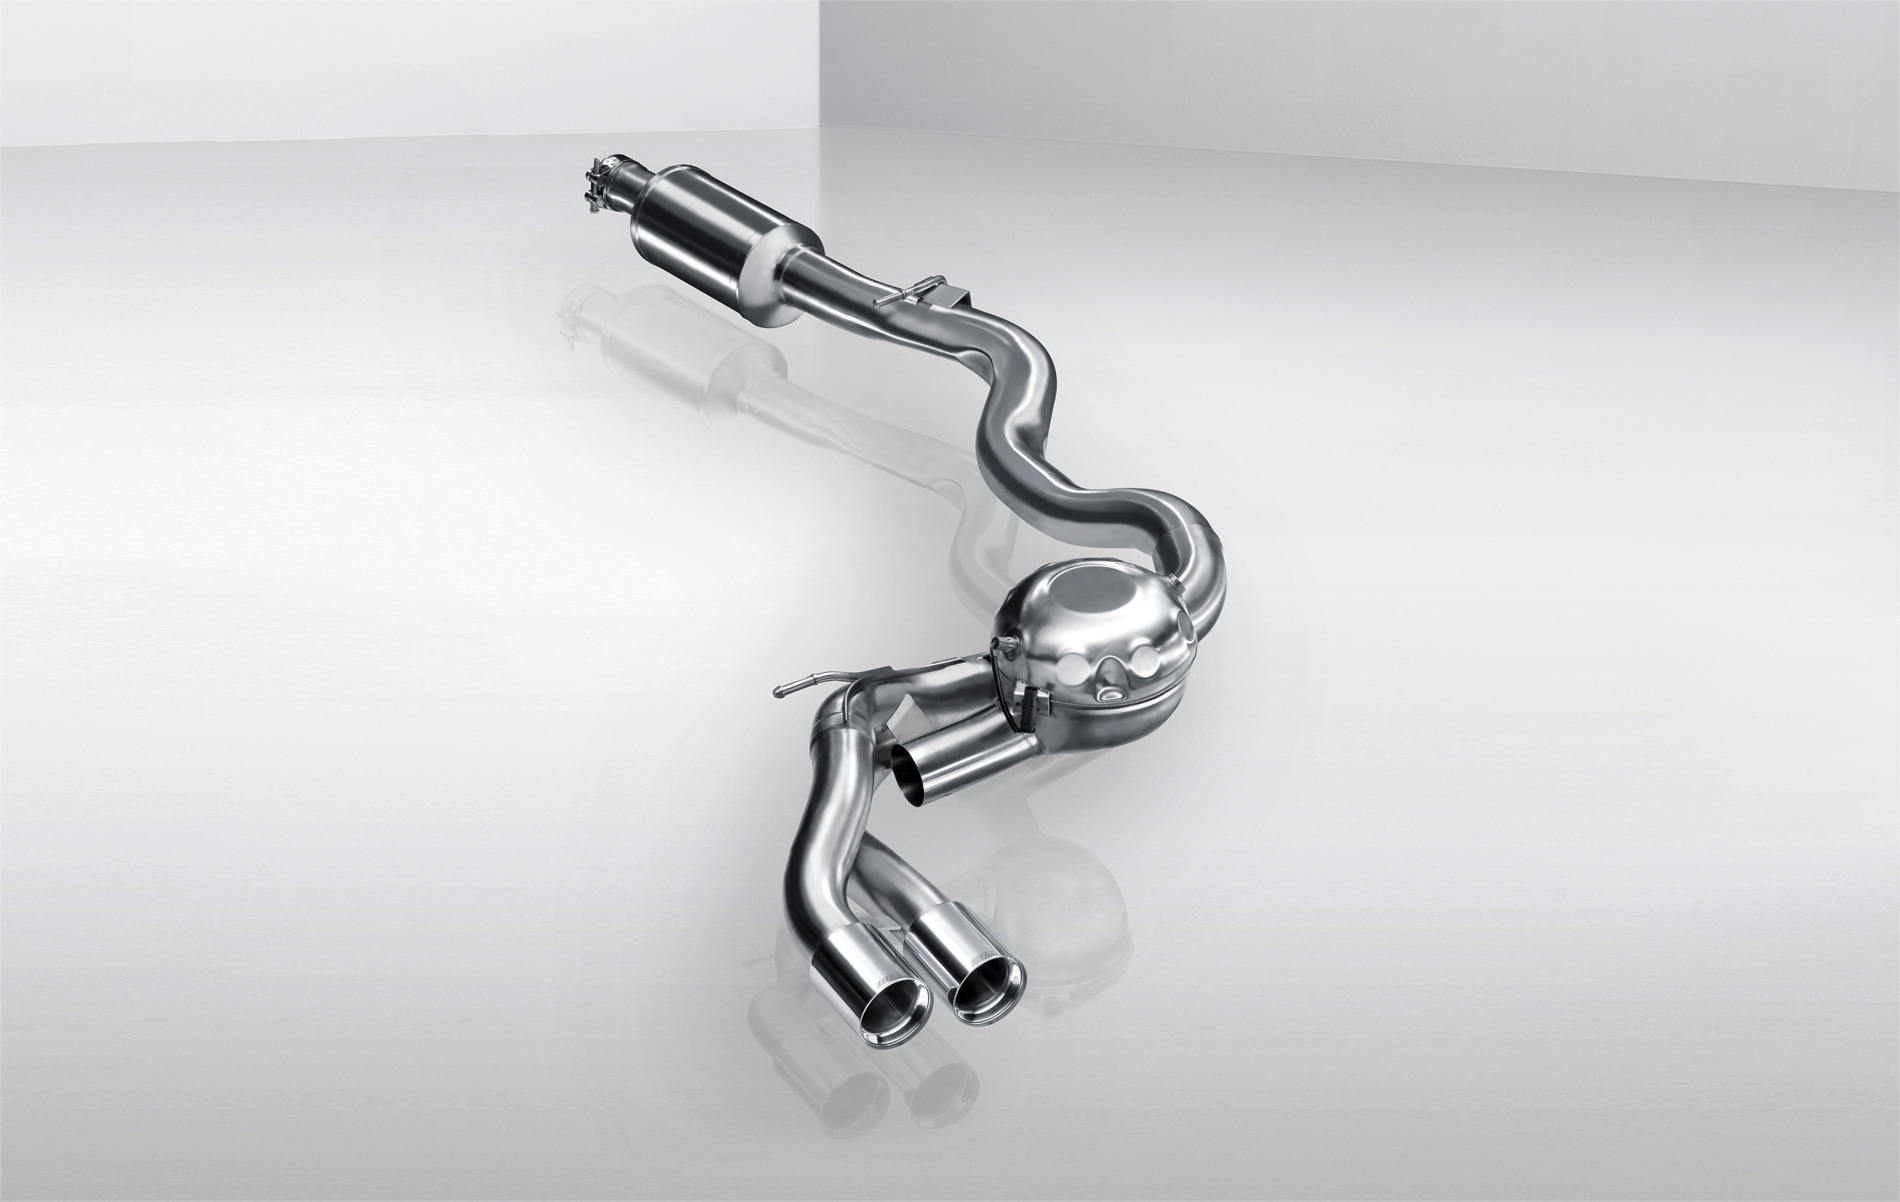 Introducing The Bmw M Performance Exhaust System Active Sound